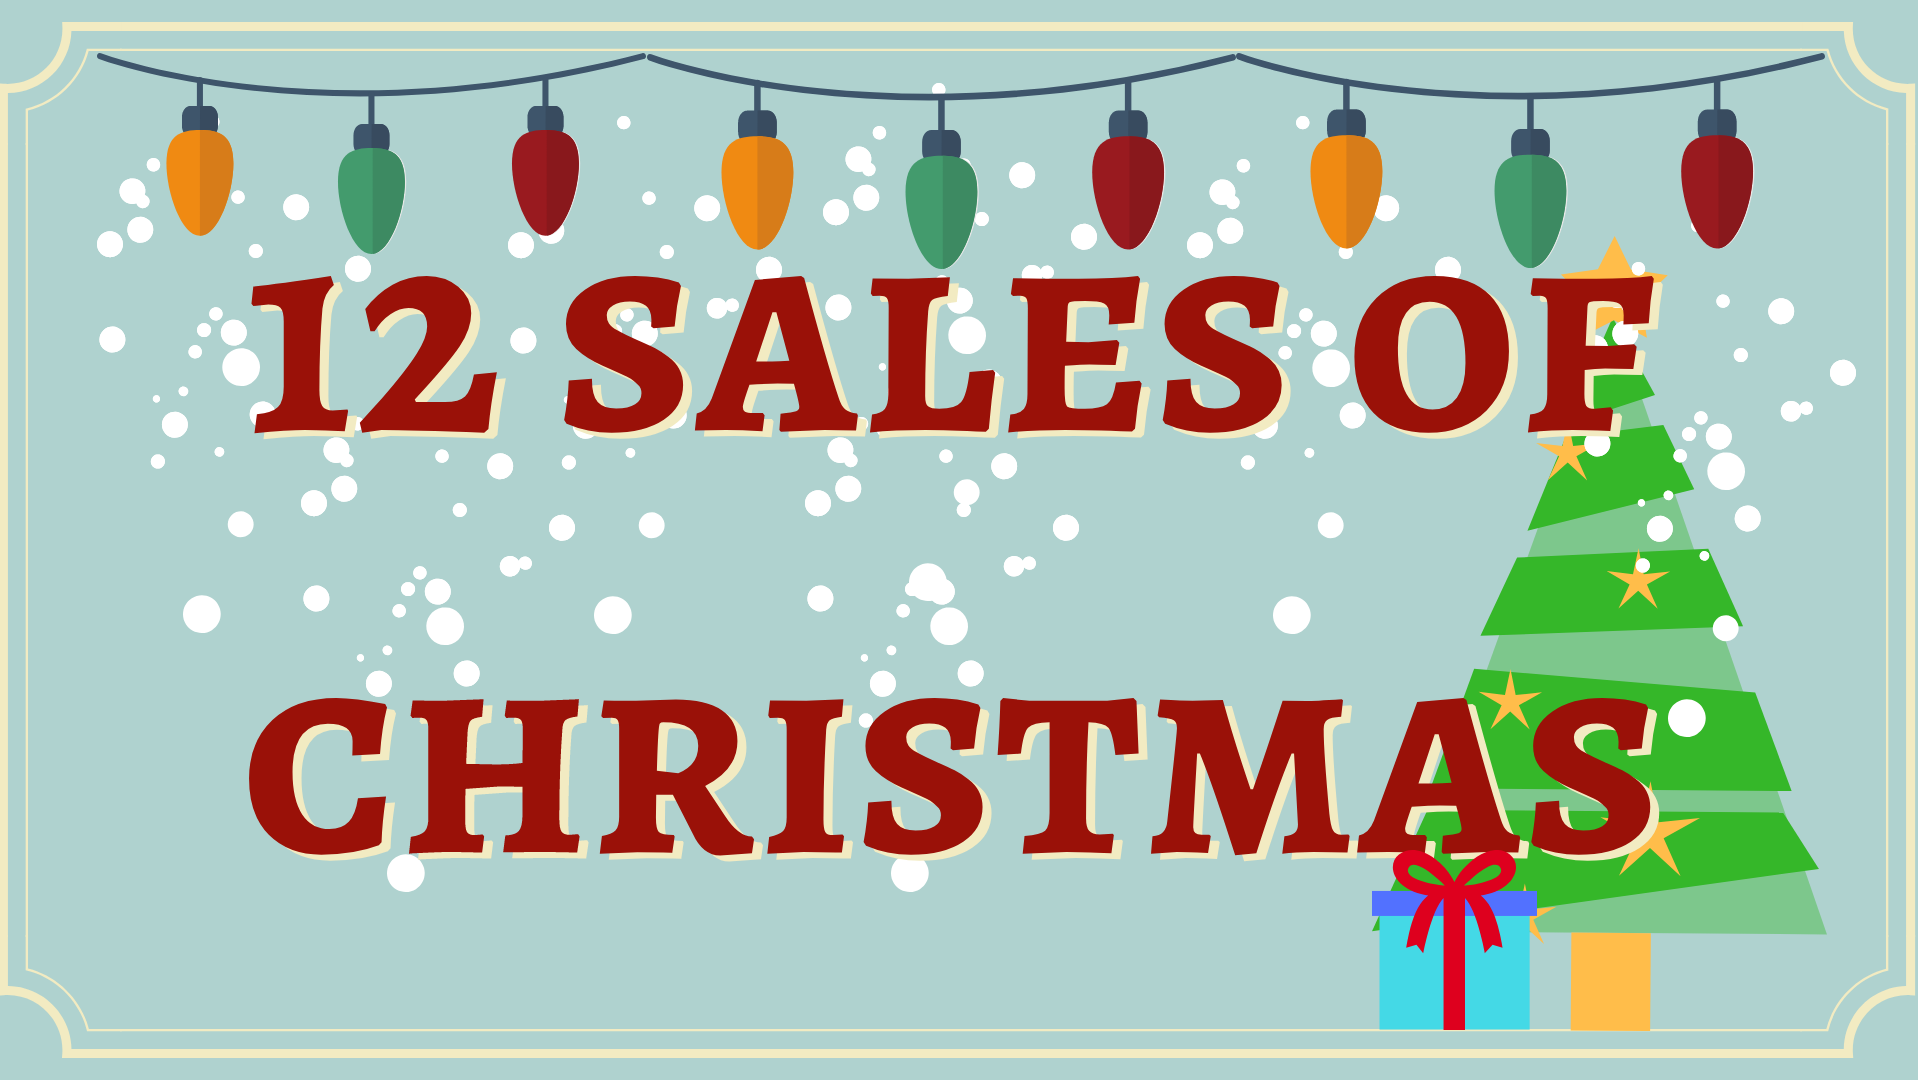 2nd sale of christmasAdd heading.png